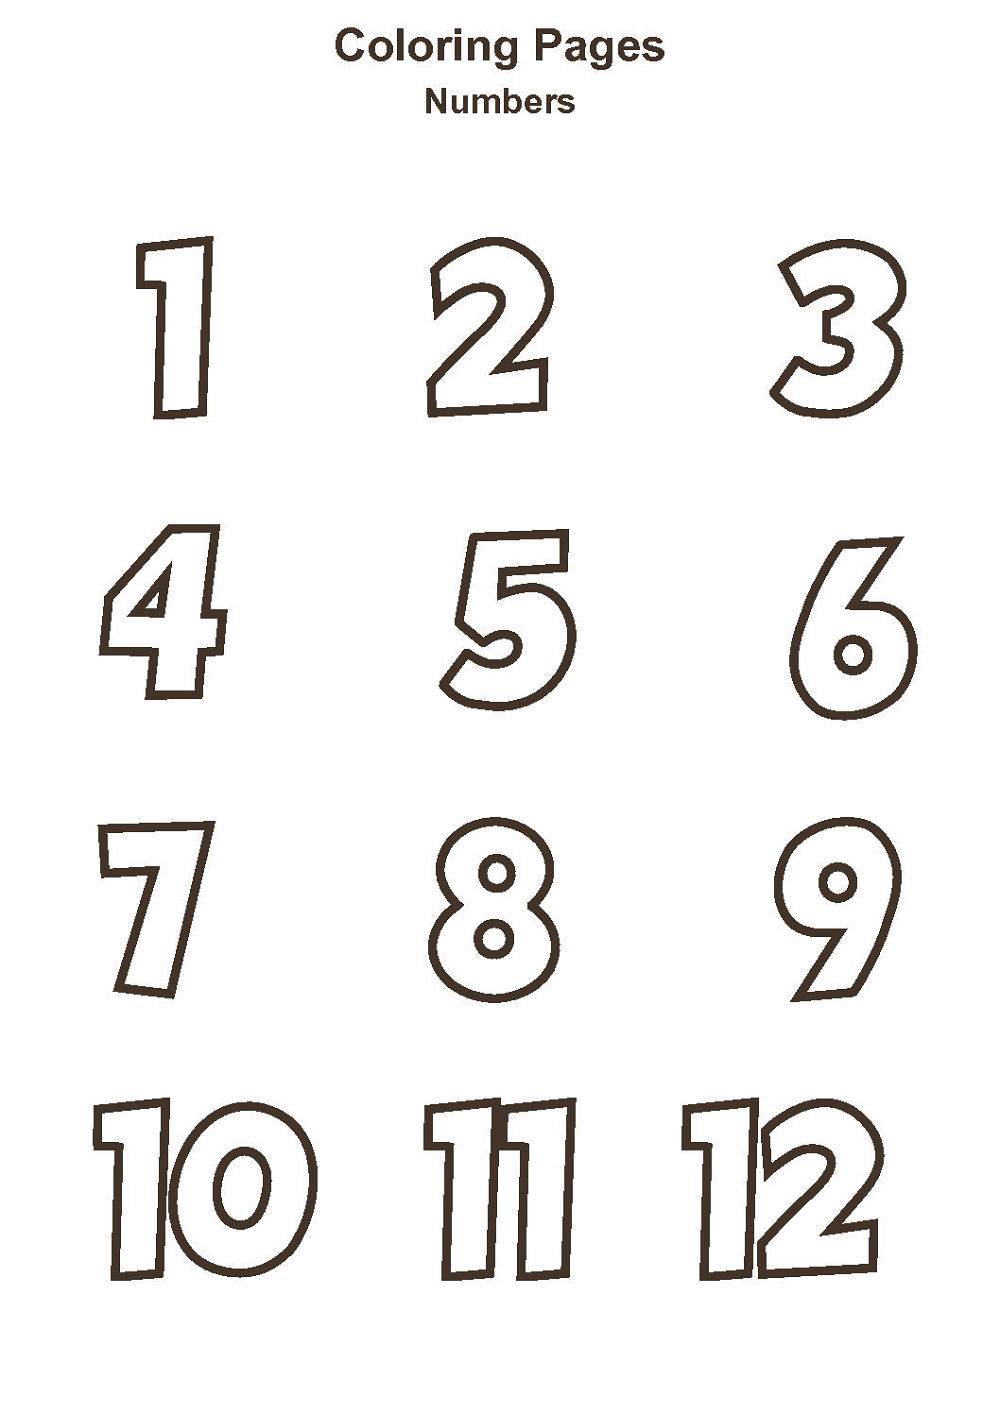 Number Coloring Pages 1 12 Coloring Pages To Print Coloring Pages Time Worksheets